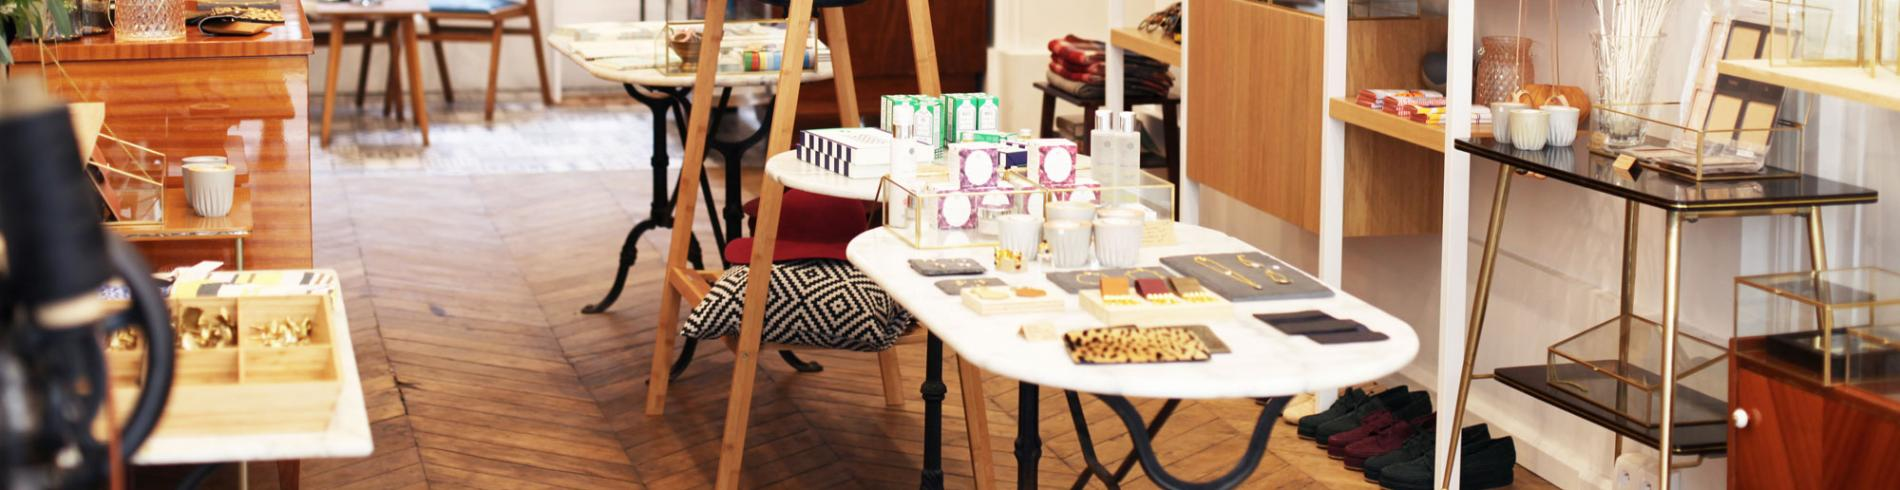 Products for sale at Atelier Couronnes